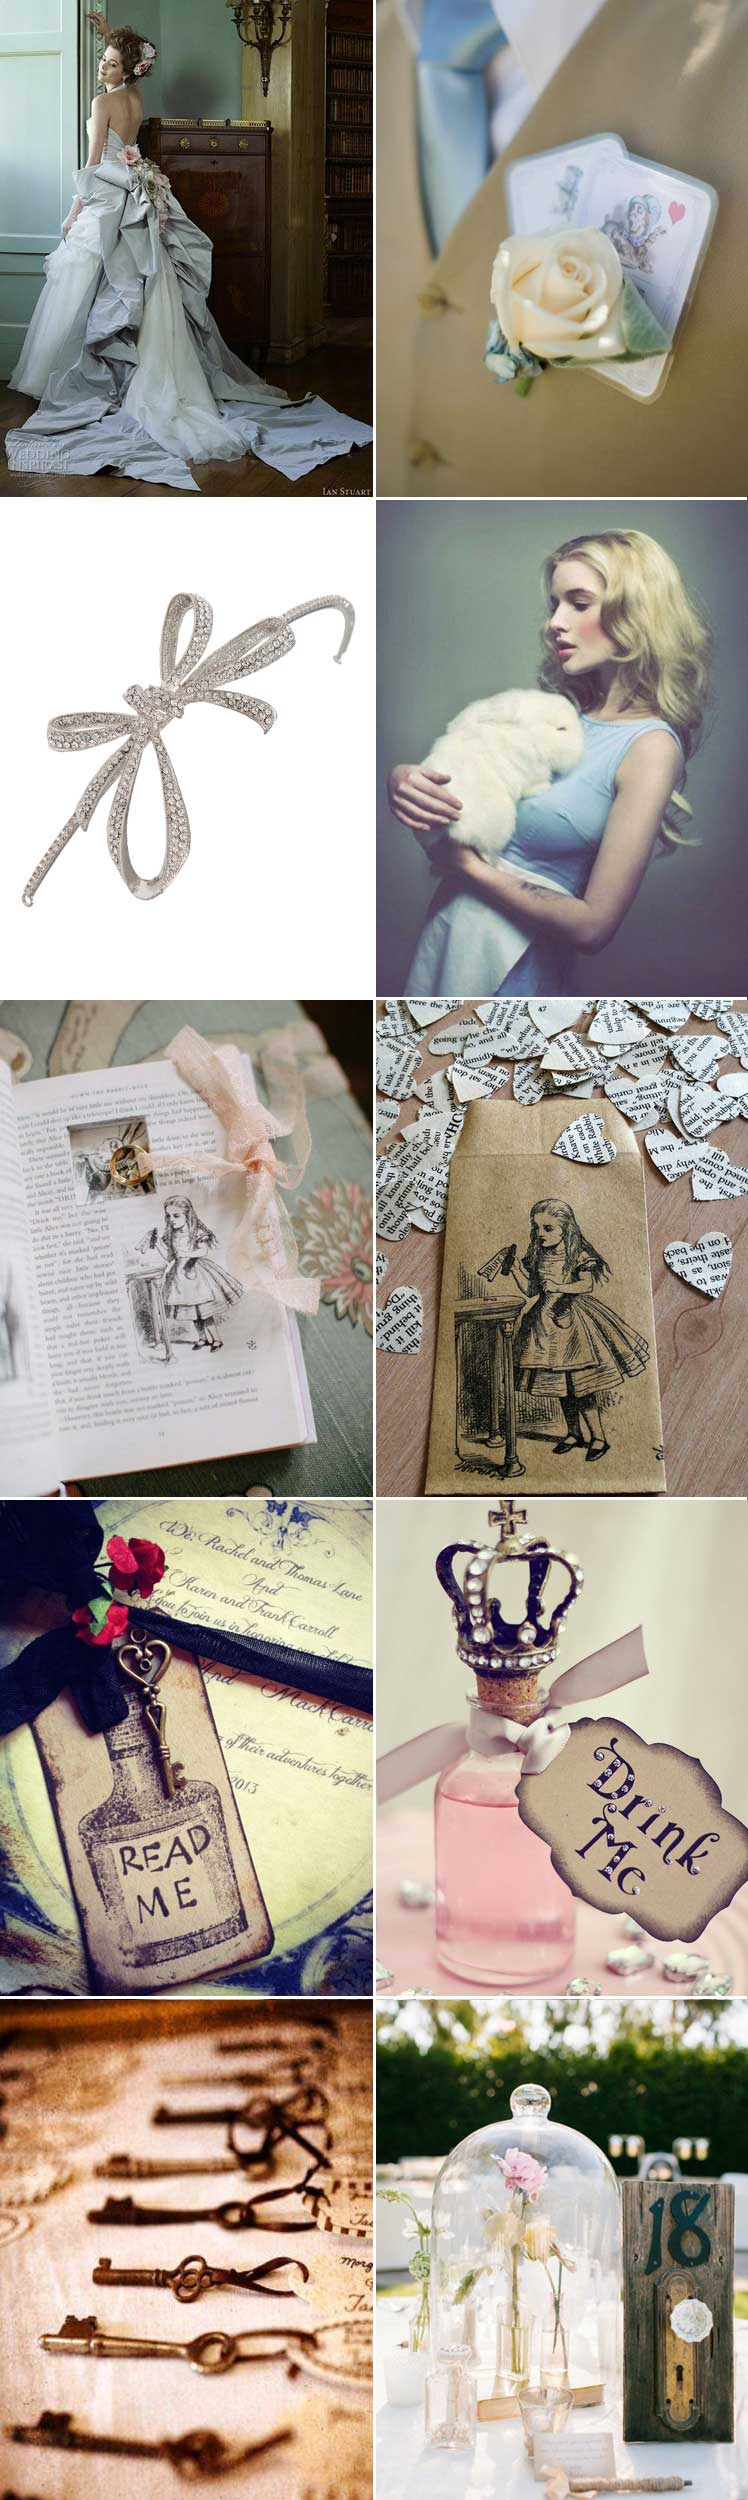 Embrace the magic of Alice in Wonderland for your wedding day theme